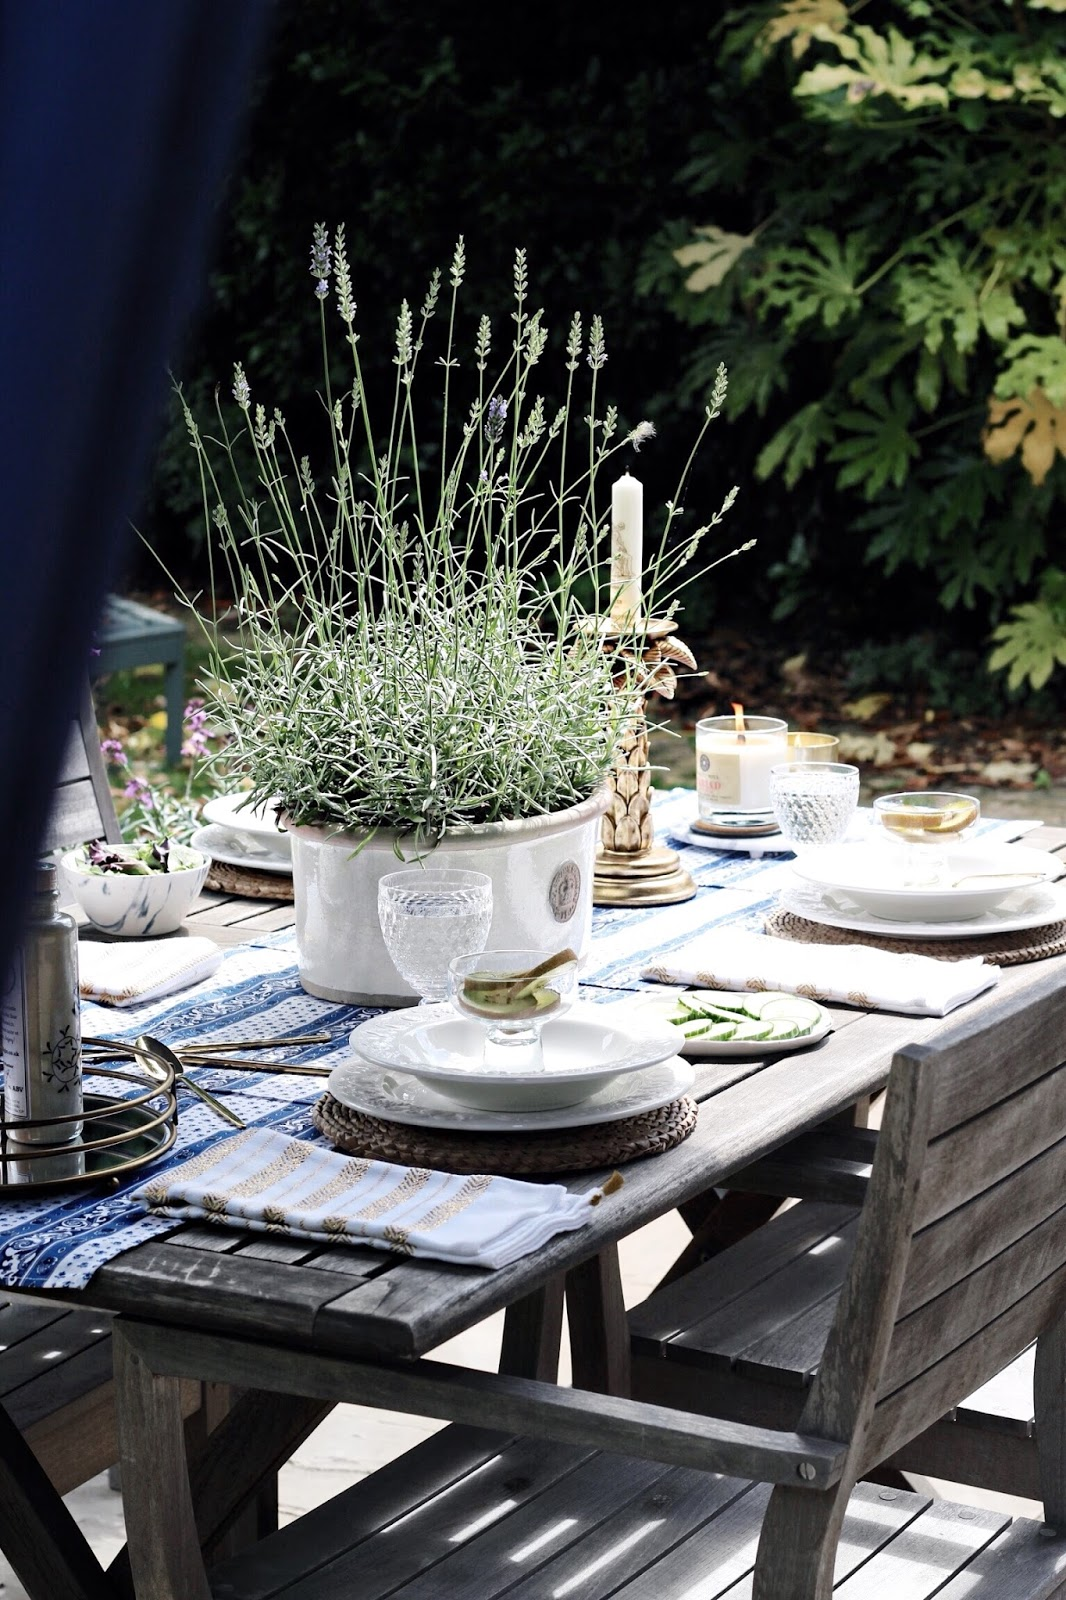 Al Fresco Summer Dining Blog Photography